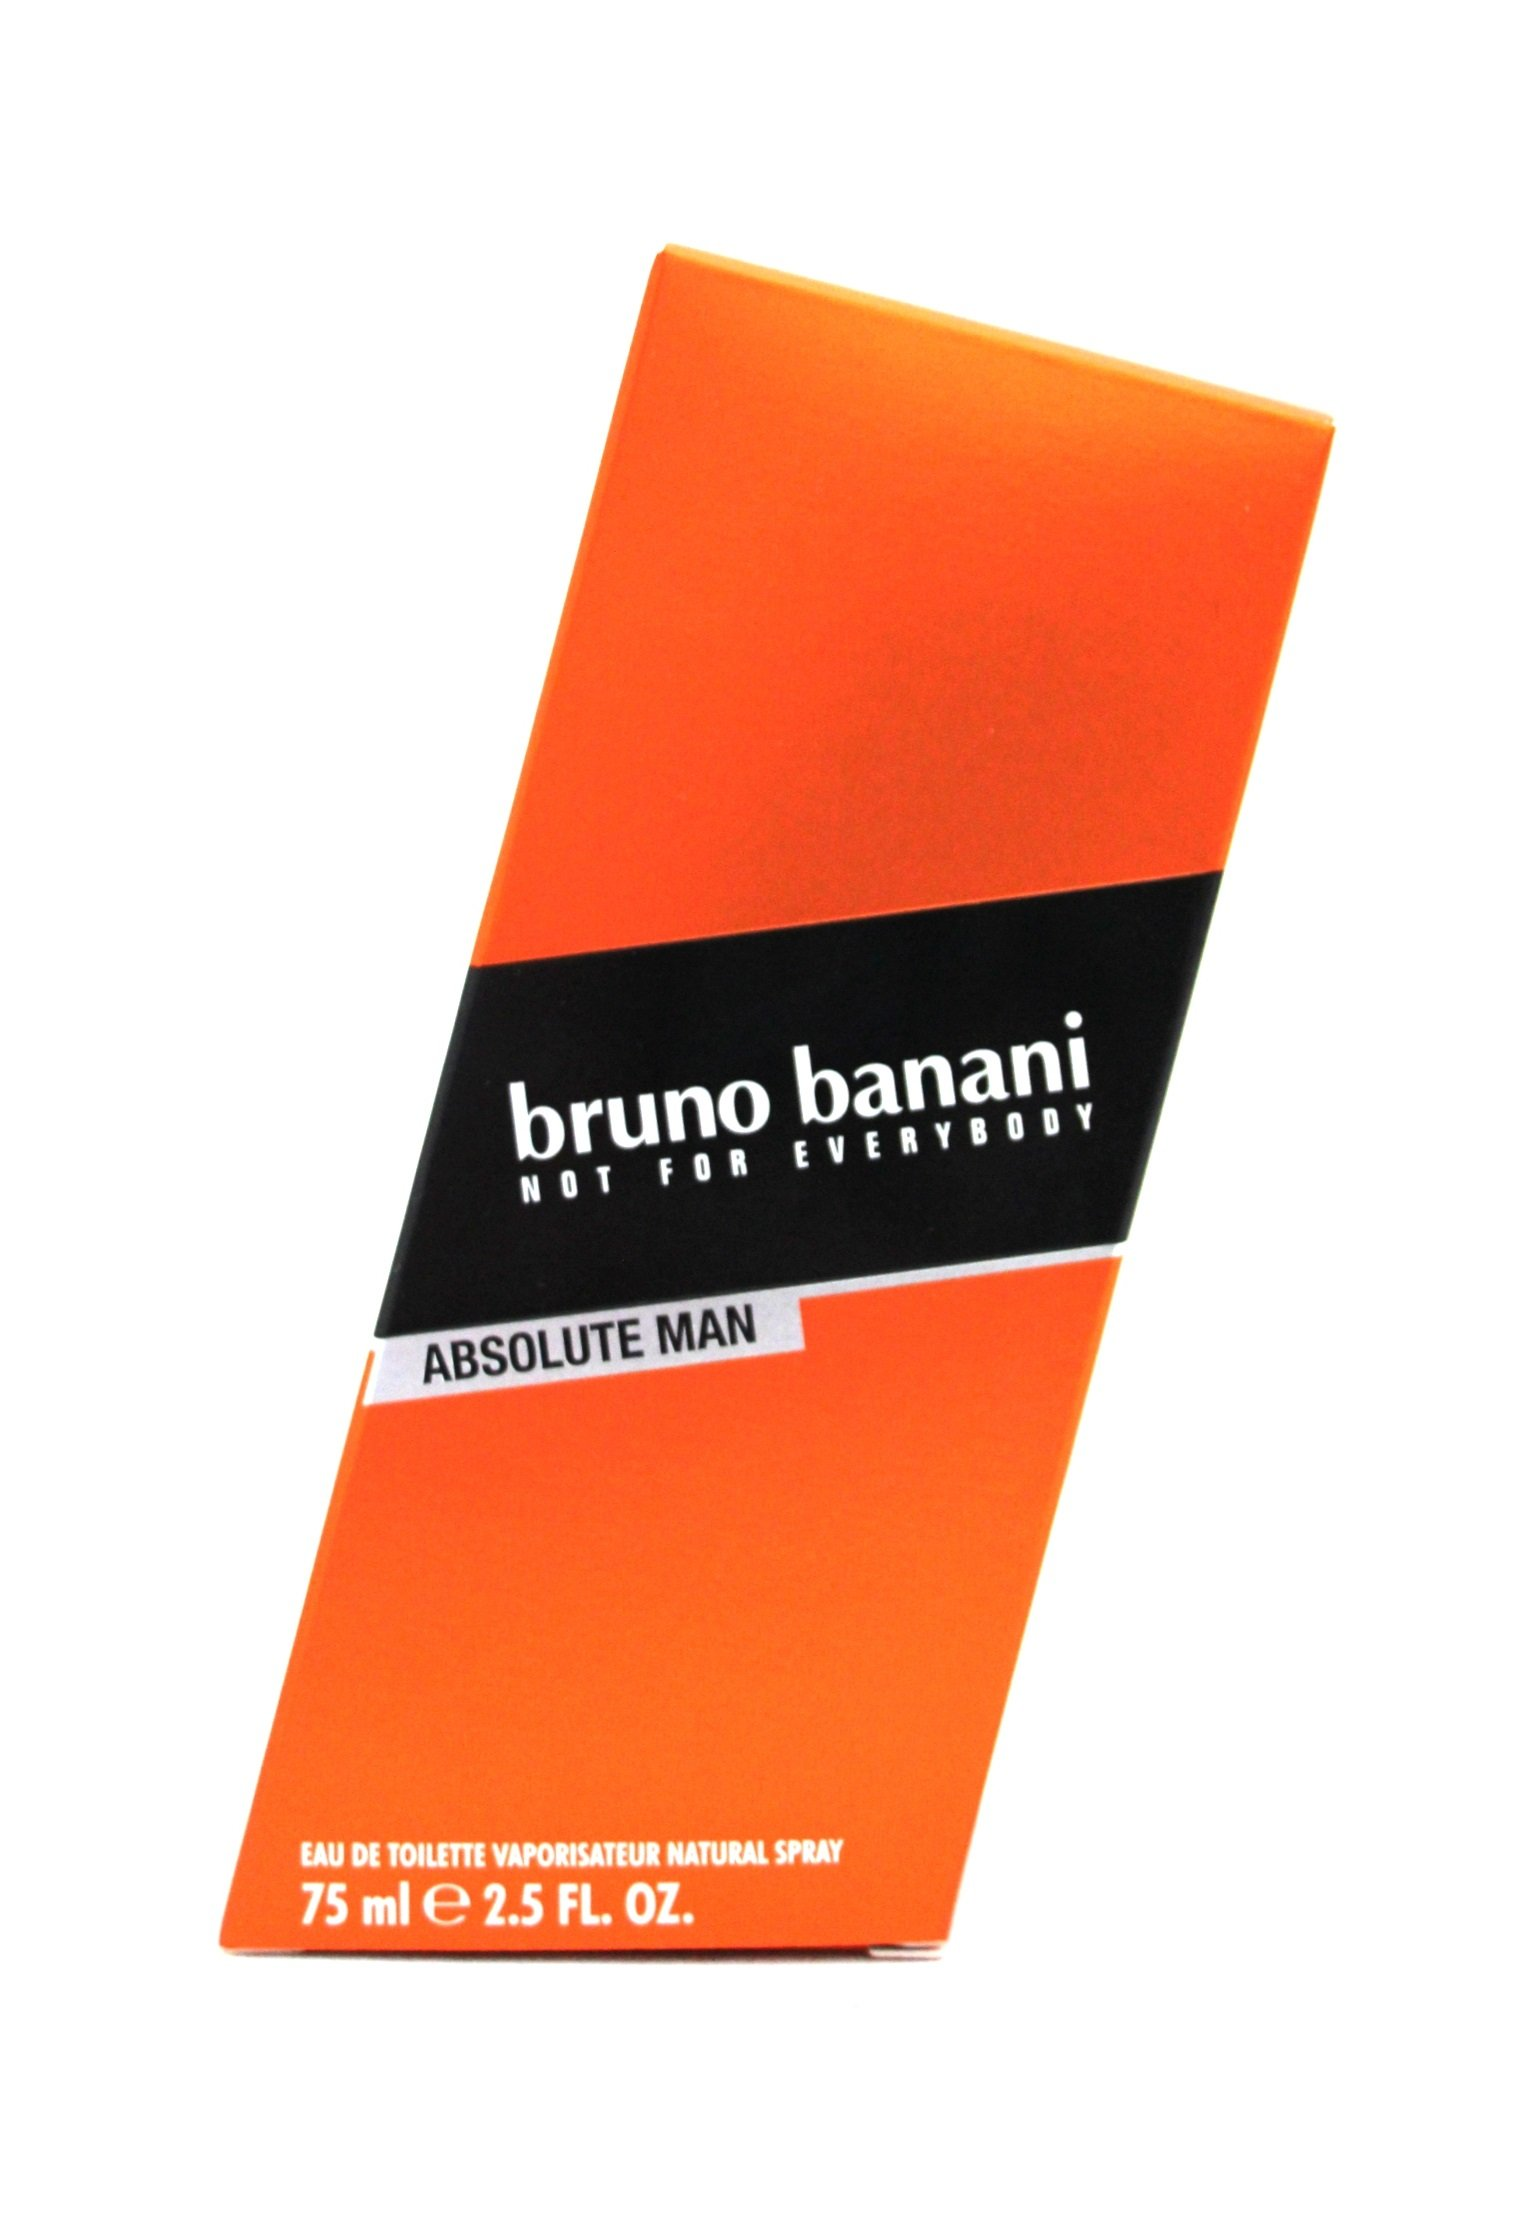 Bruno Banani Absolute Man Eau de Toilette